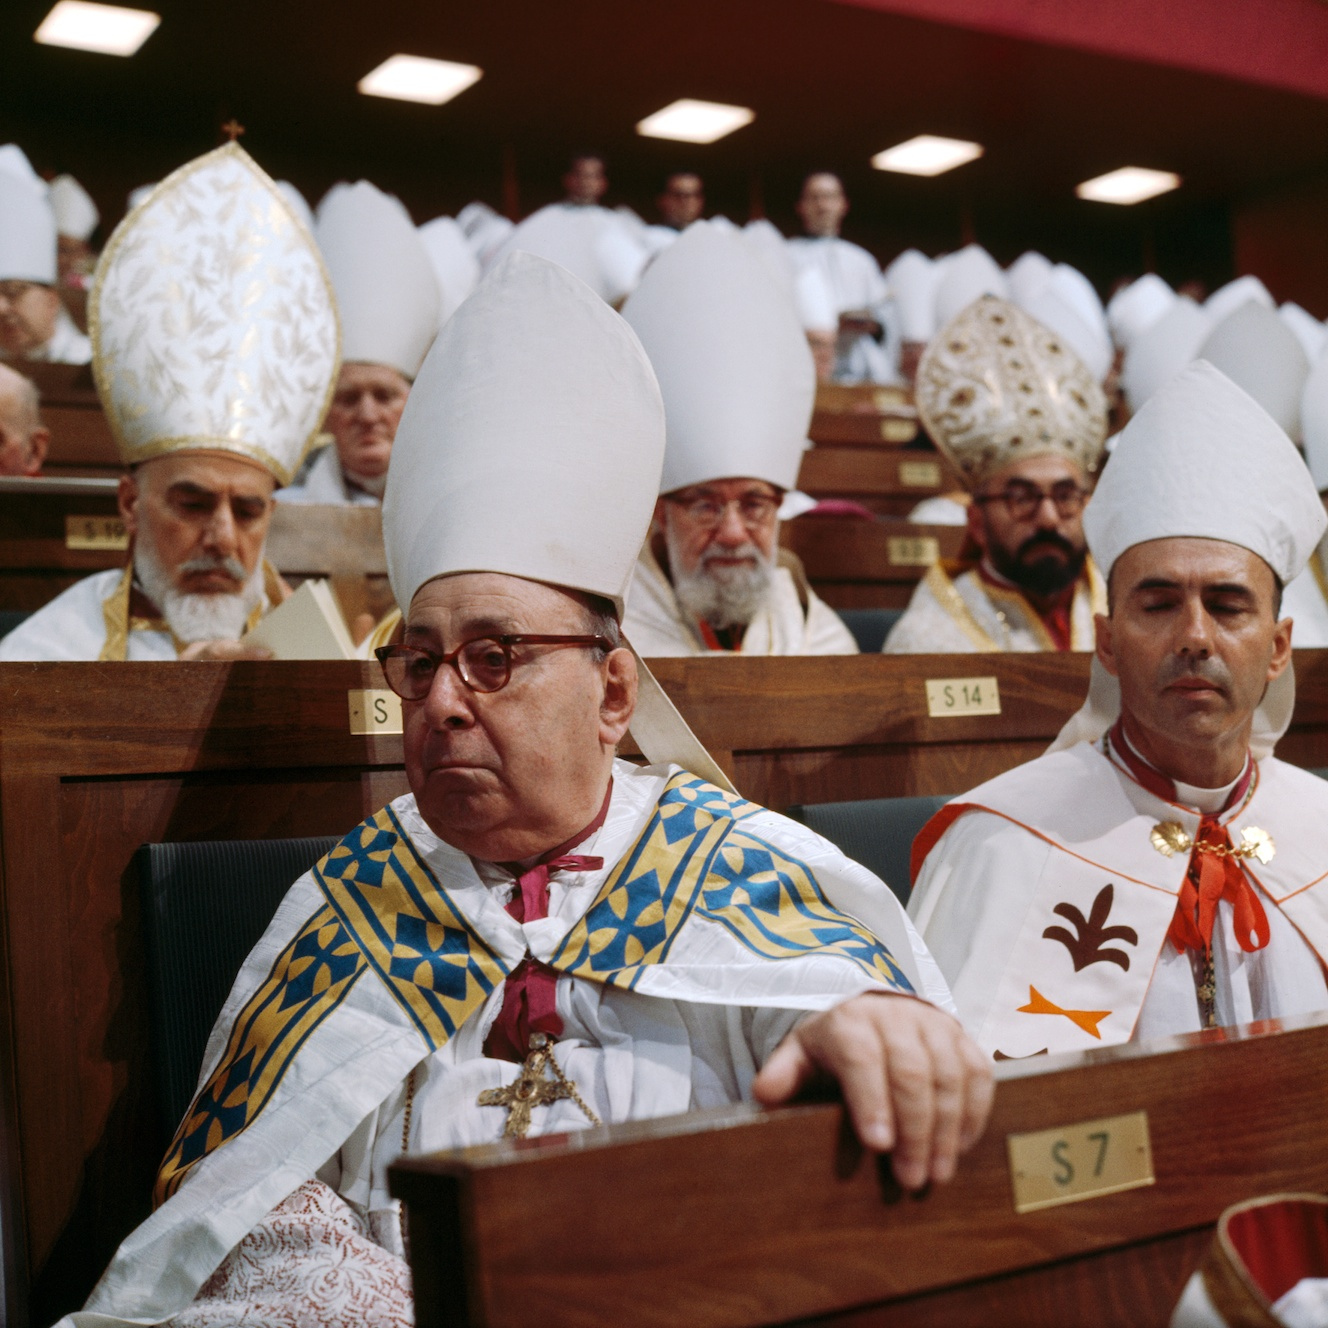 the 2nd vatican council The second vatican council was the twenty-first ecumenical council of the roman catholic church that brought about significant renewals, reforms, and reaffirmations.